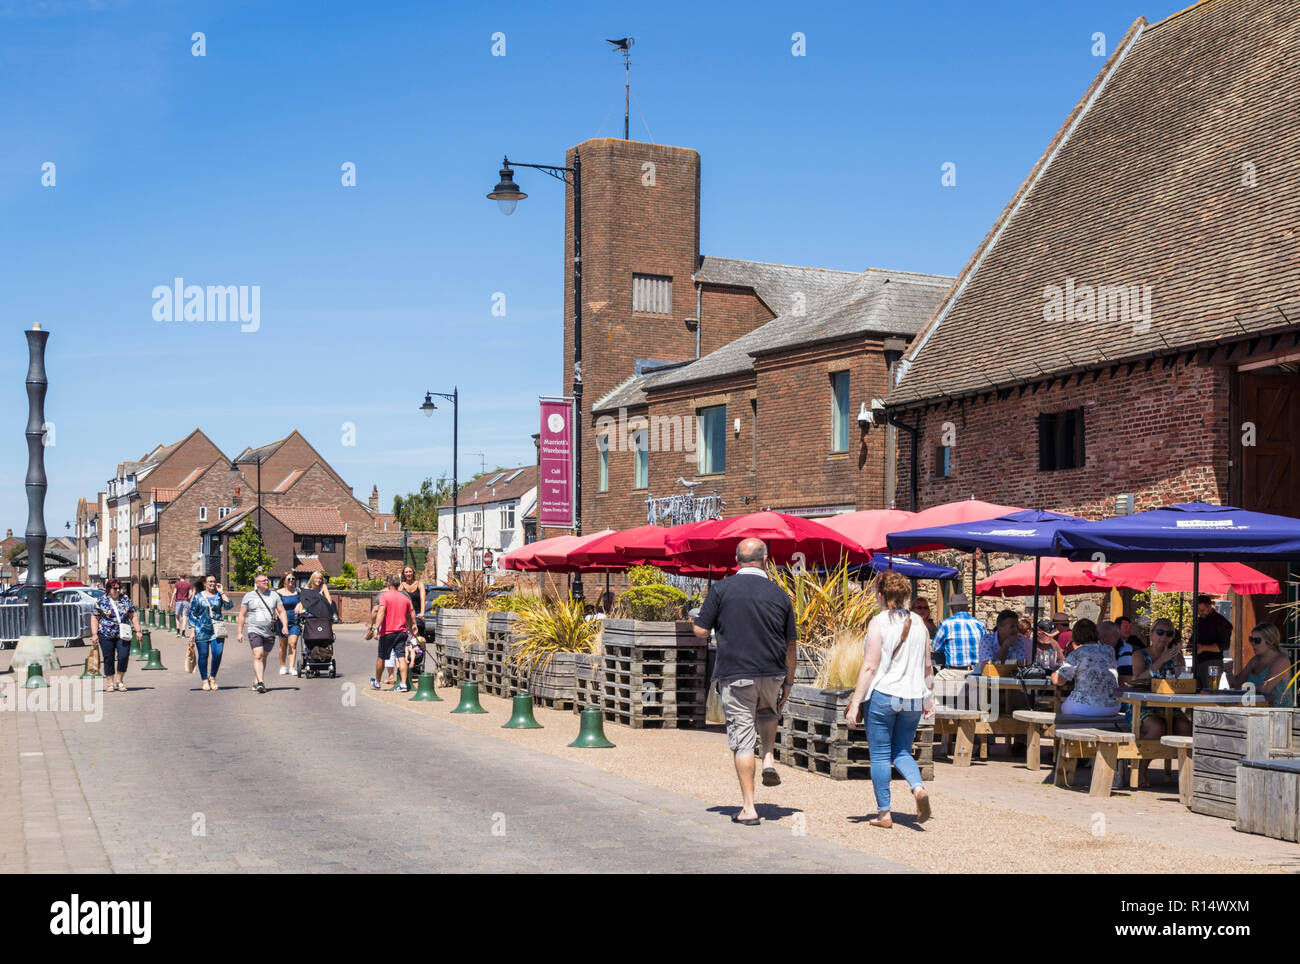 King's Lynn Norfolk People walking past Marriott's Warehouse a16th-century warehouse with a restaurant South Quay King's Lynn England GB UK Europe - Stock Image